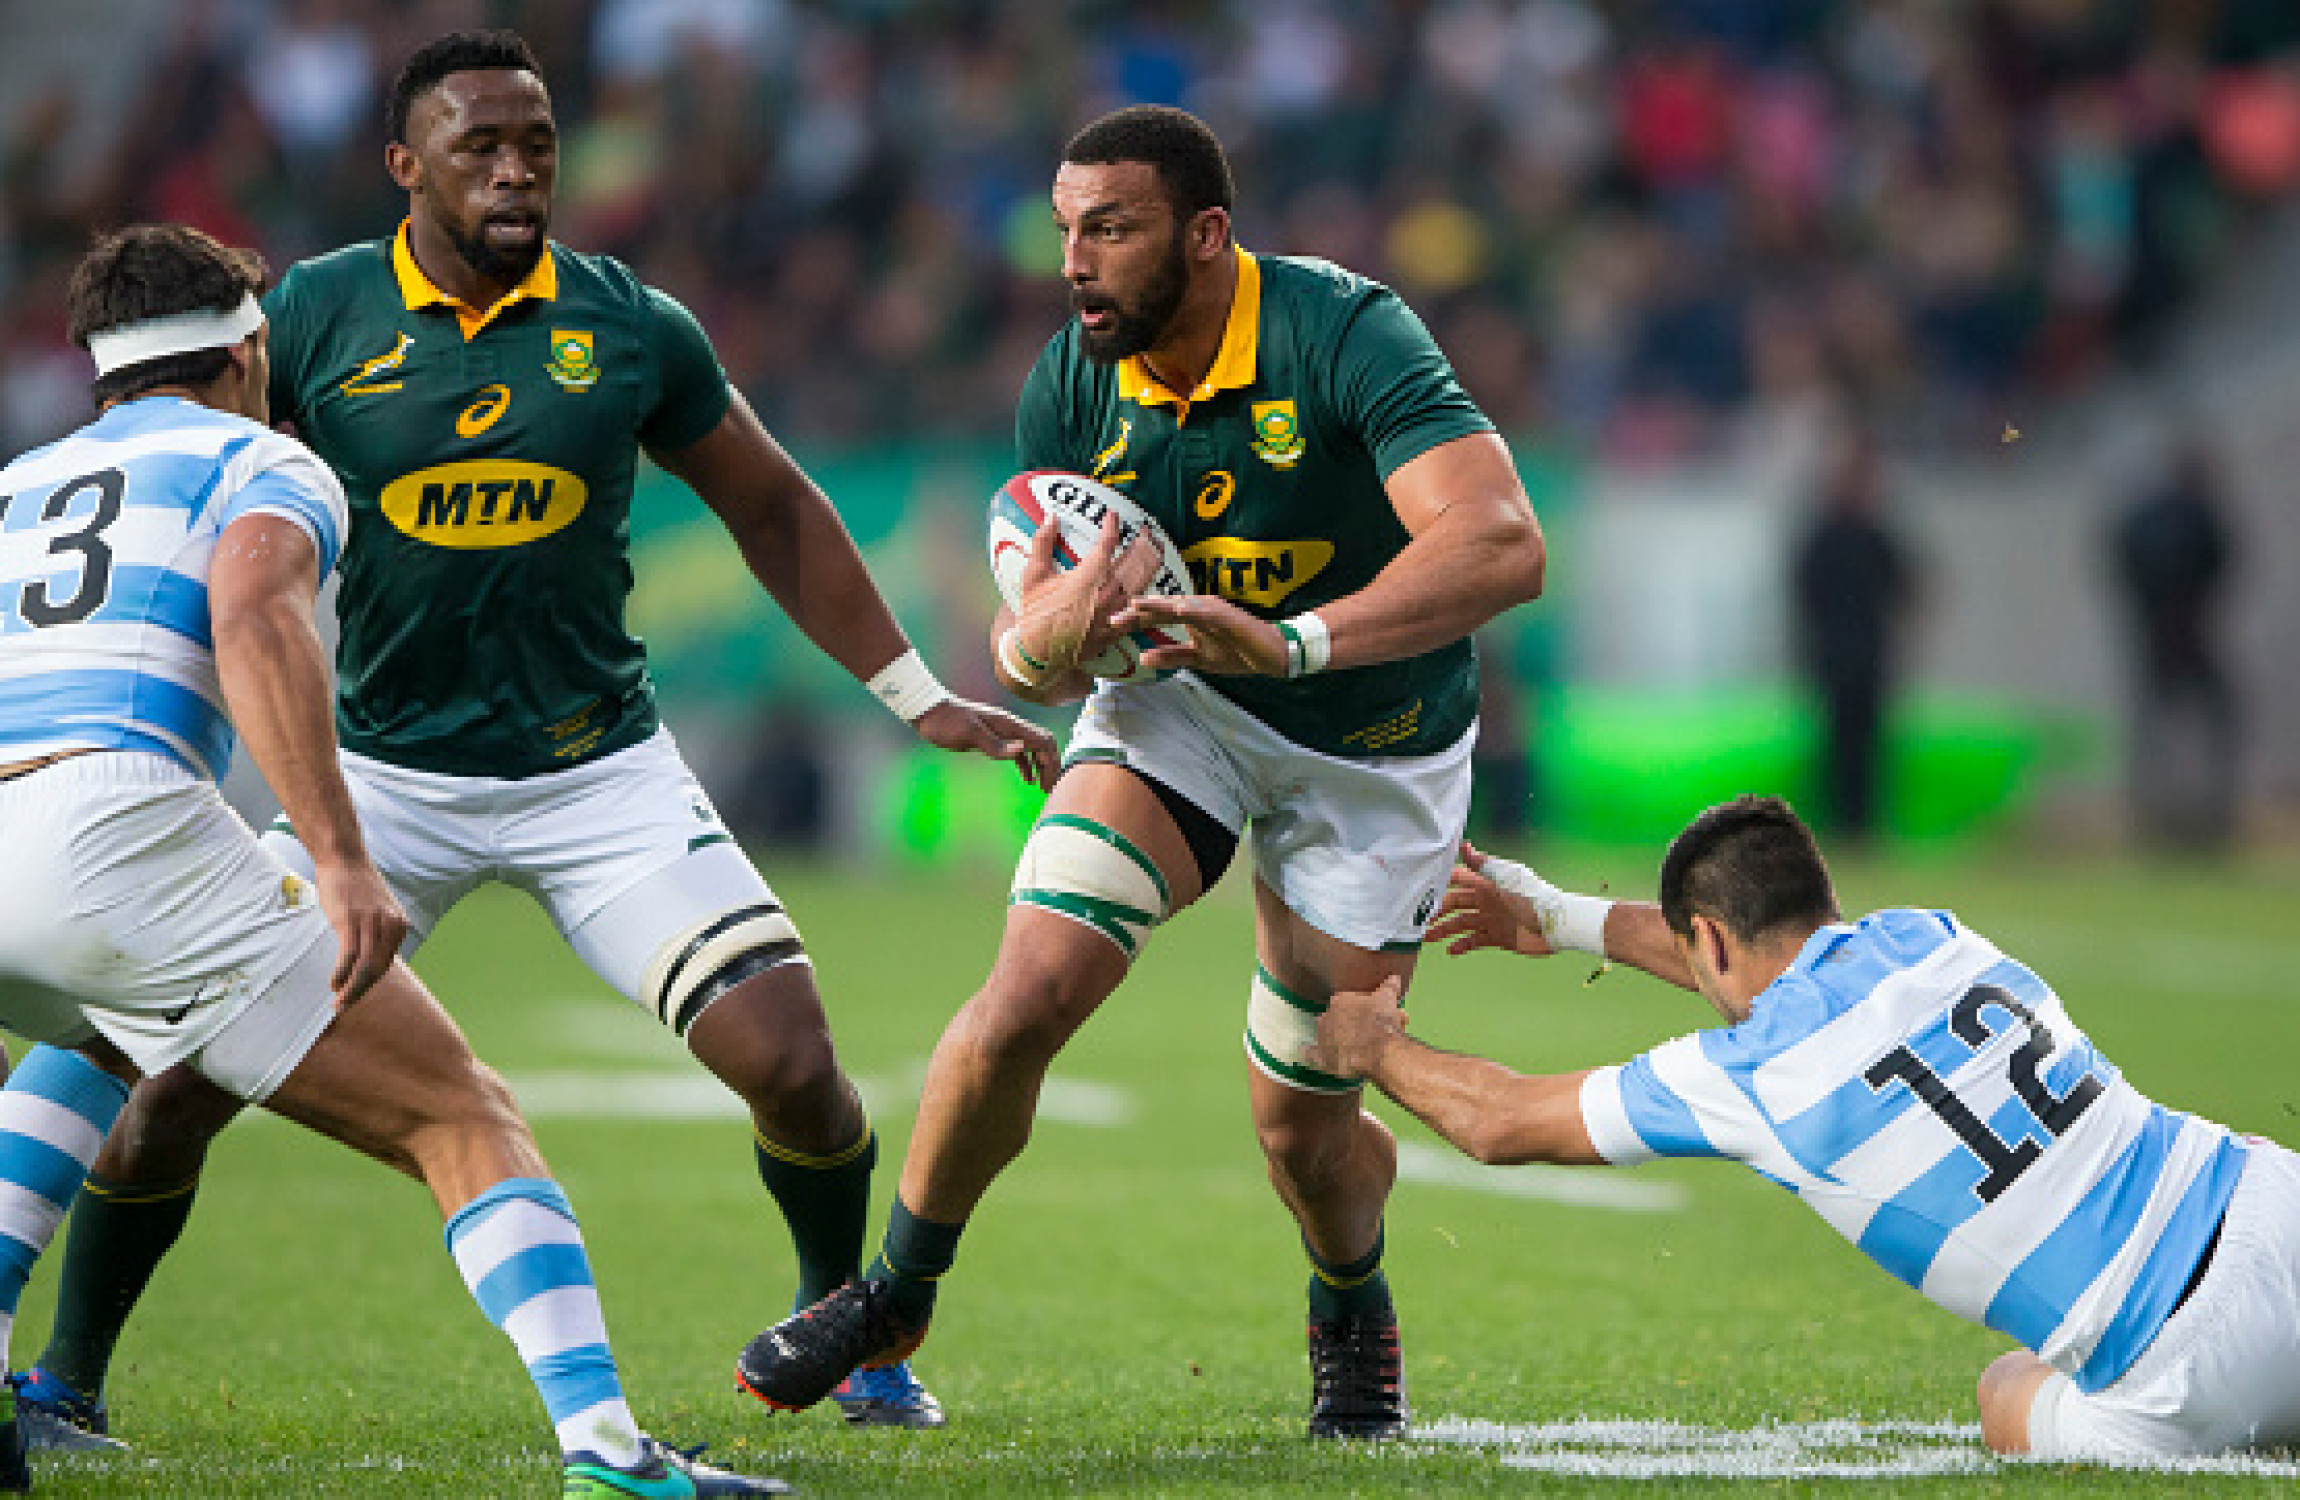 Springbok loosie signs deal with Welsh club